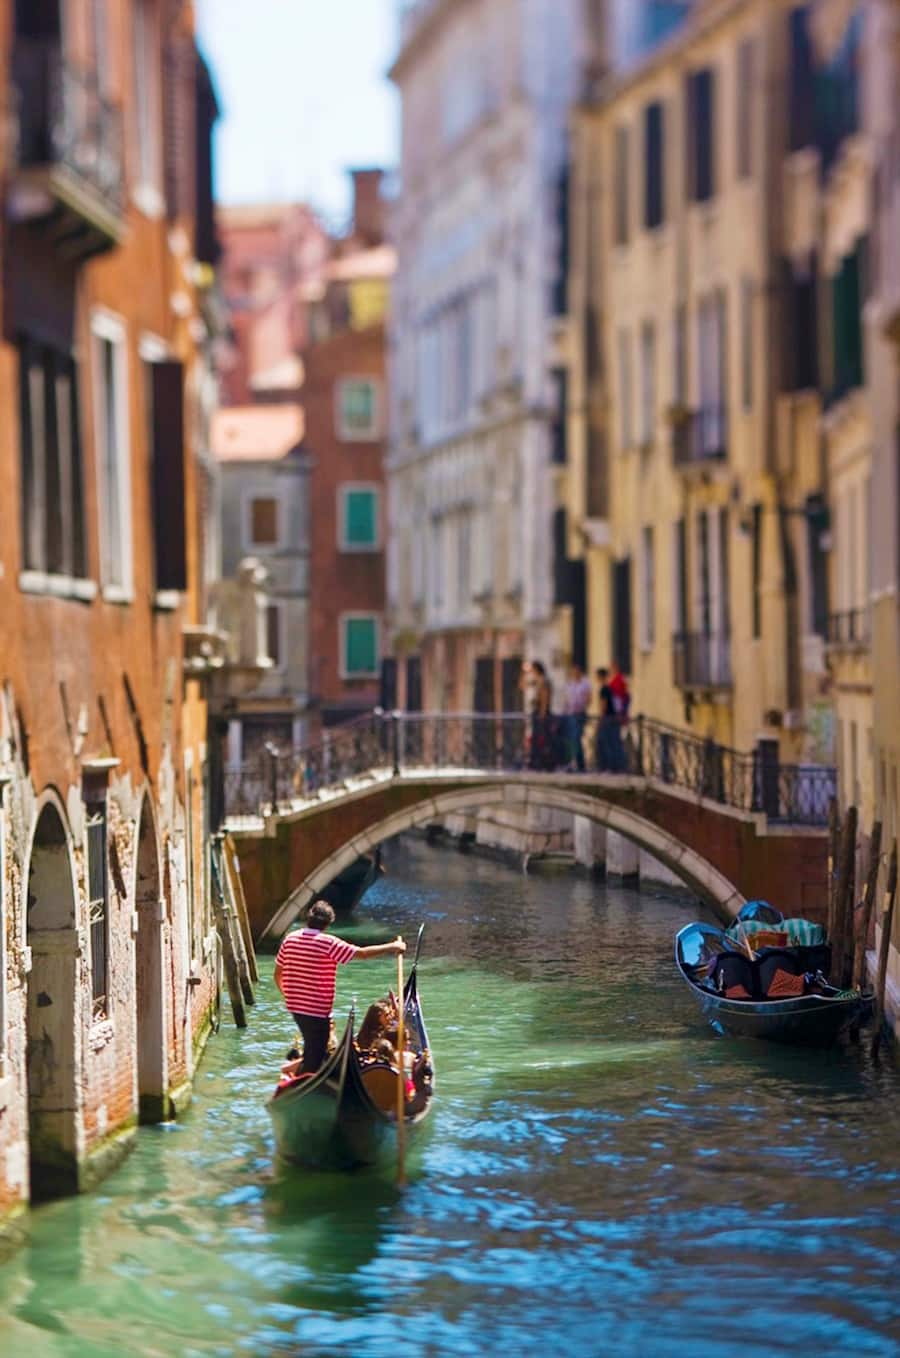 Italy tour through canals on Adventures by Disney vacation